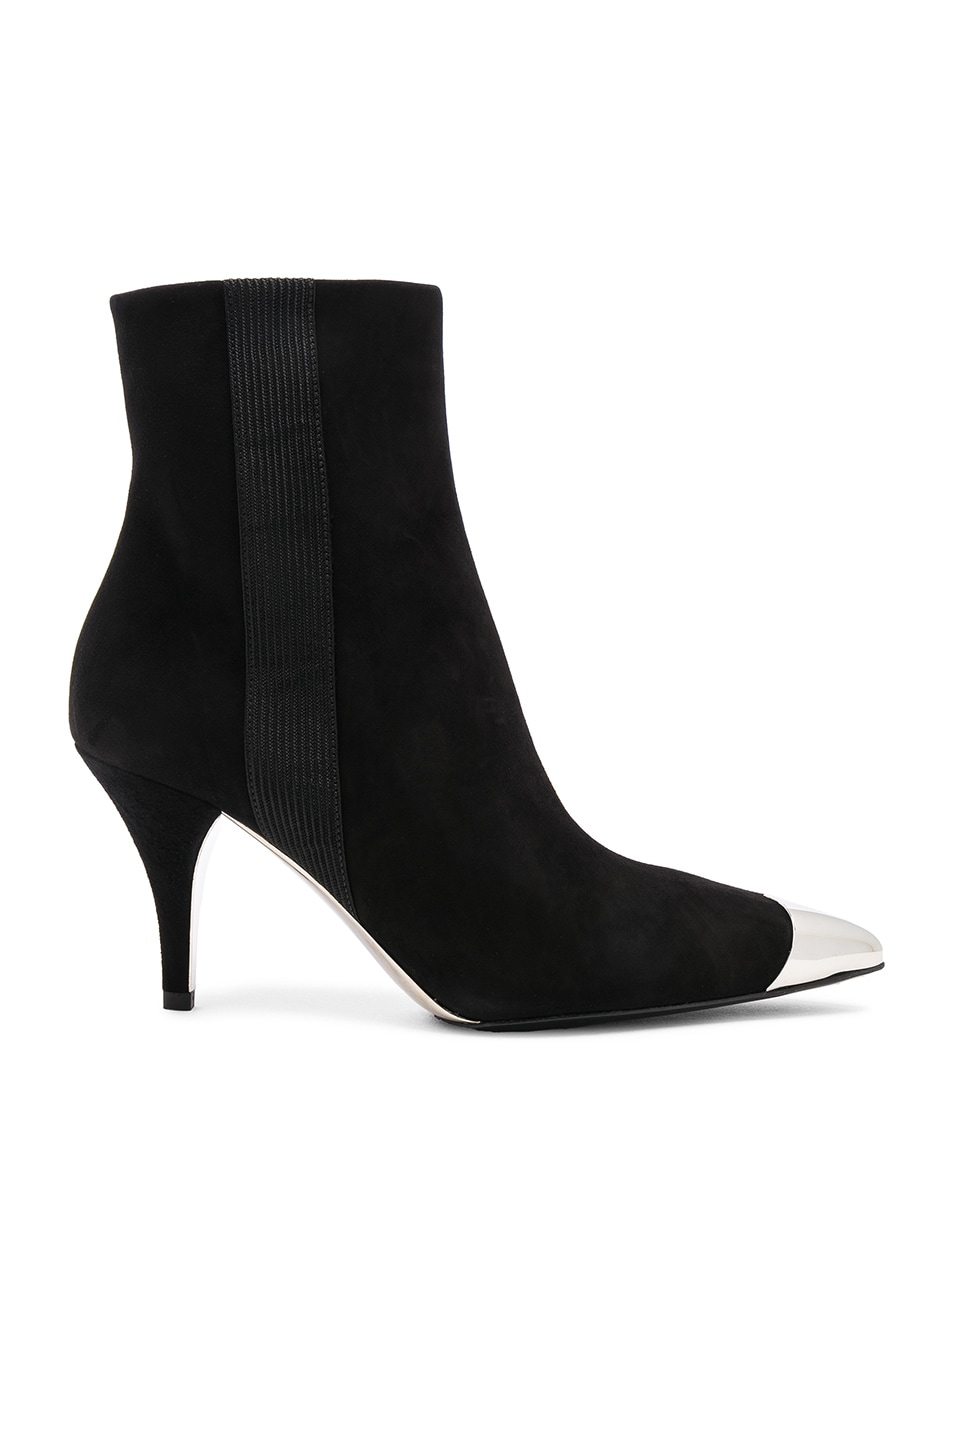 Image 1 of CALVIN KLEIN 205W39NYC Suede Rocio Stiletto Boots in Black